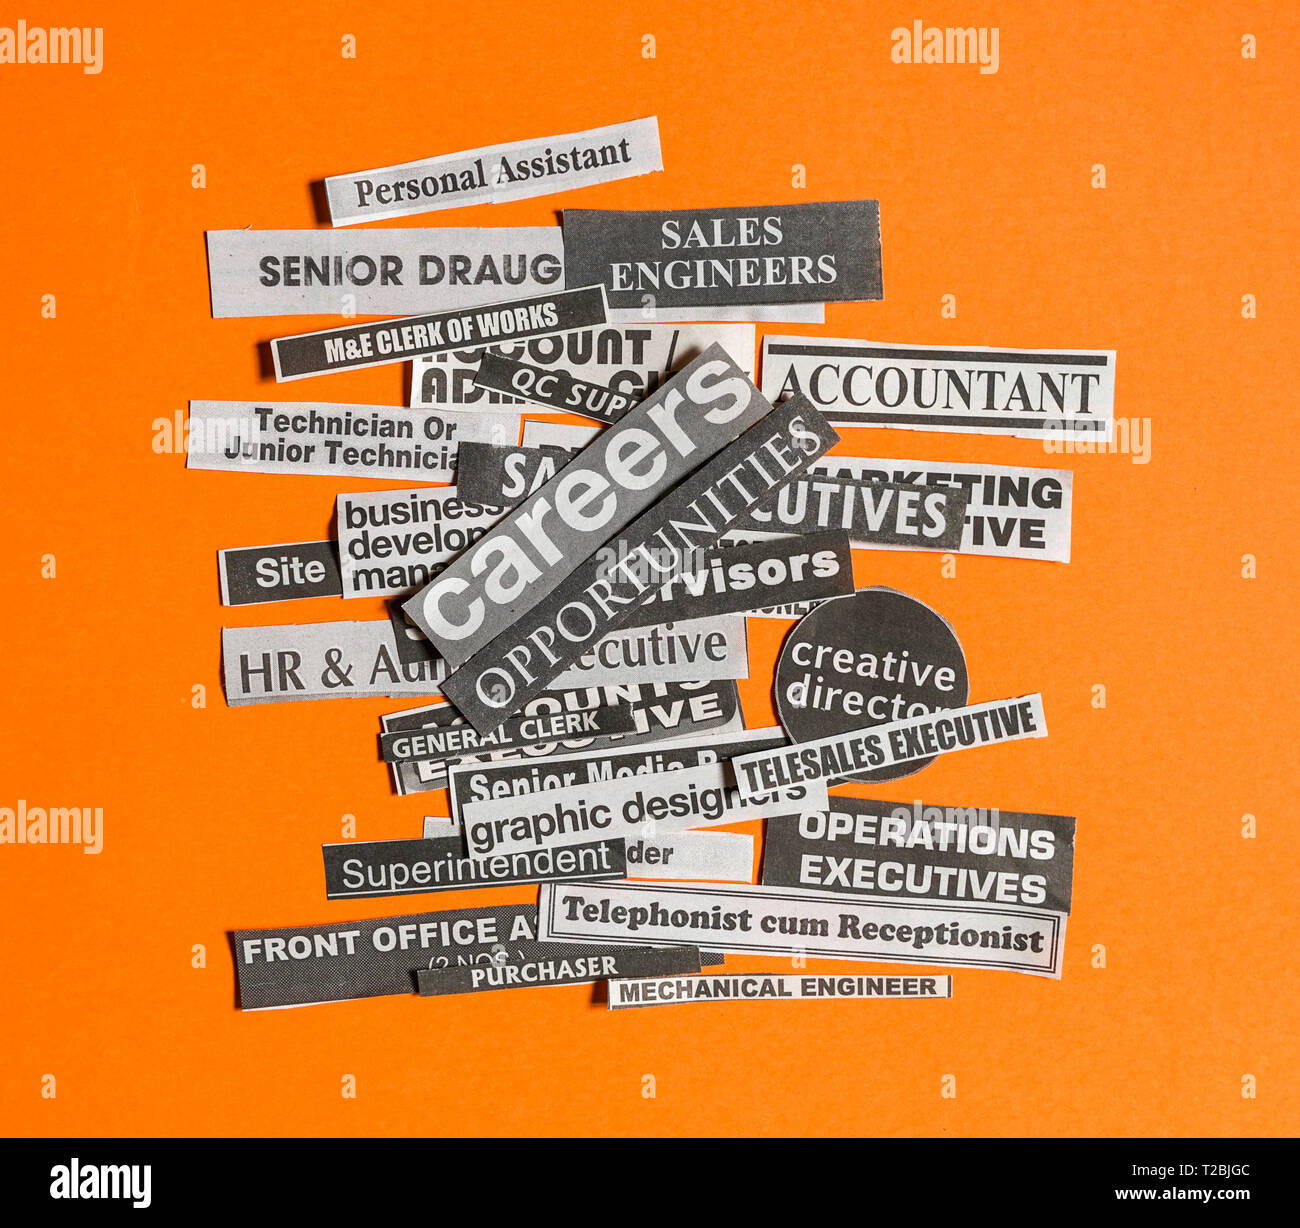 Jobs or careers concept: multiple job titles or occupations cut off from newspaper with Careers opportunities on top of the pile and on orange backgro - Stock Image